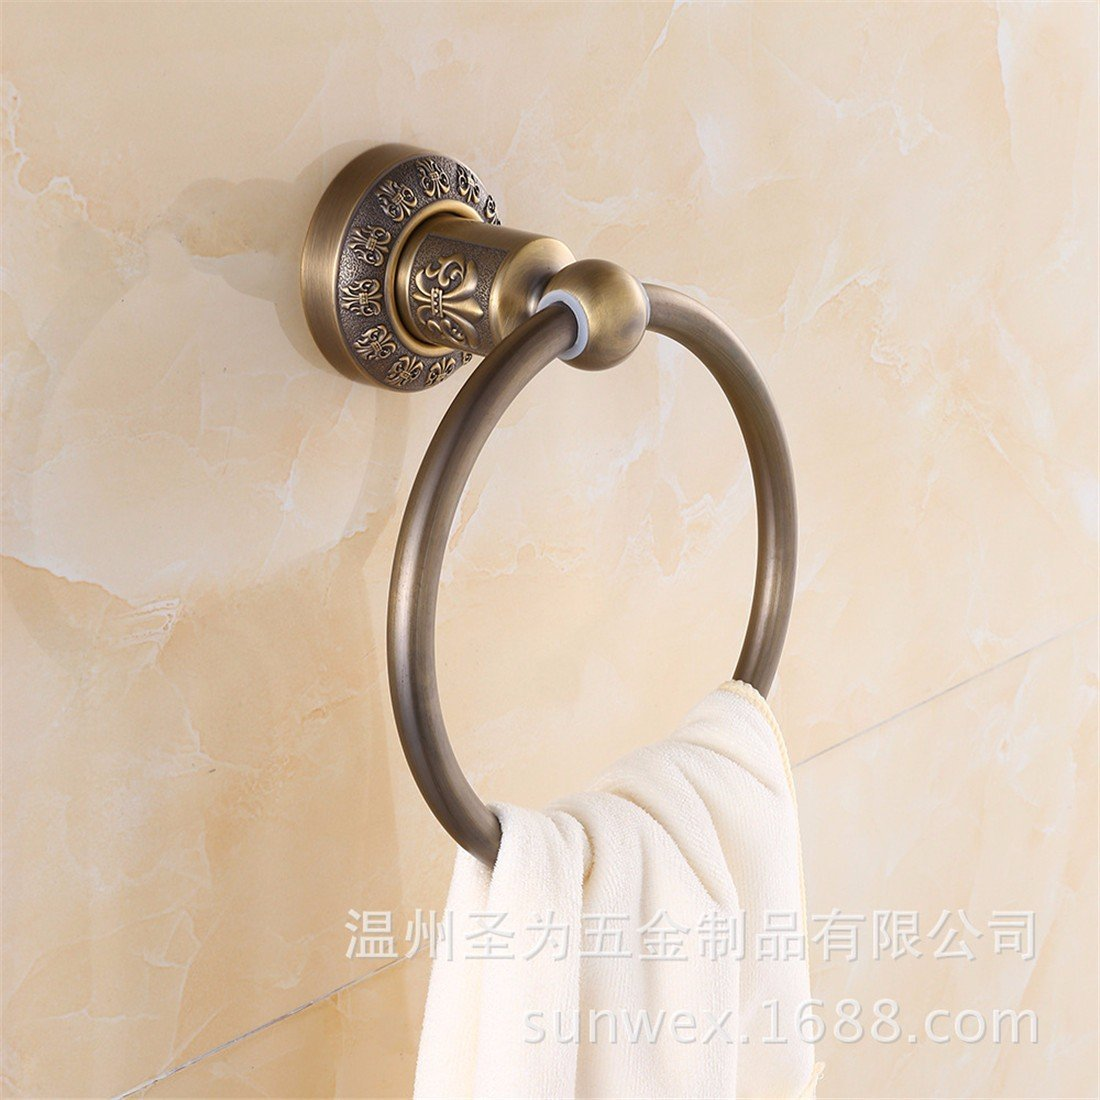 LAONA European style antique bronze carving, zinc alloy bathroom fittings, towel bar, toilet paper rack,Towel ring